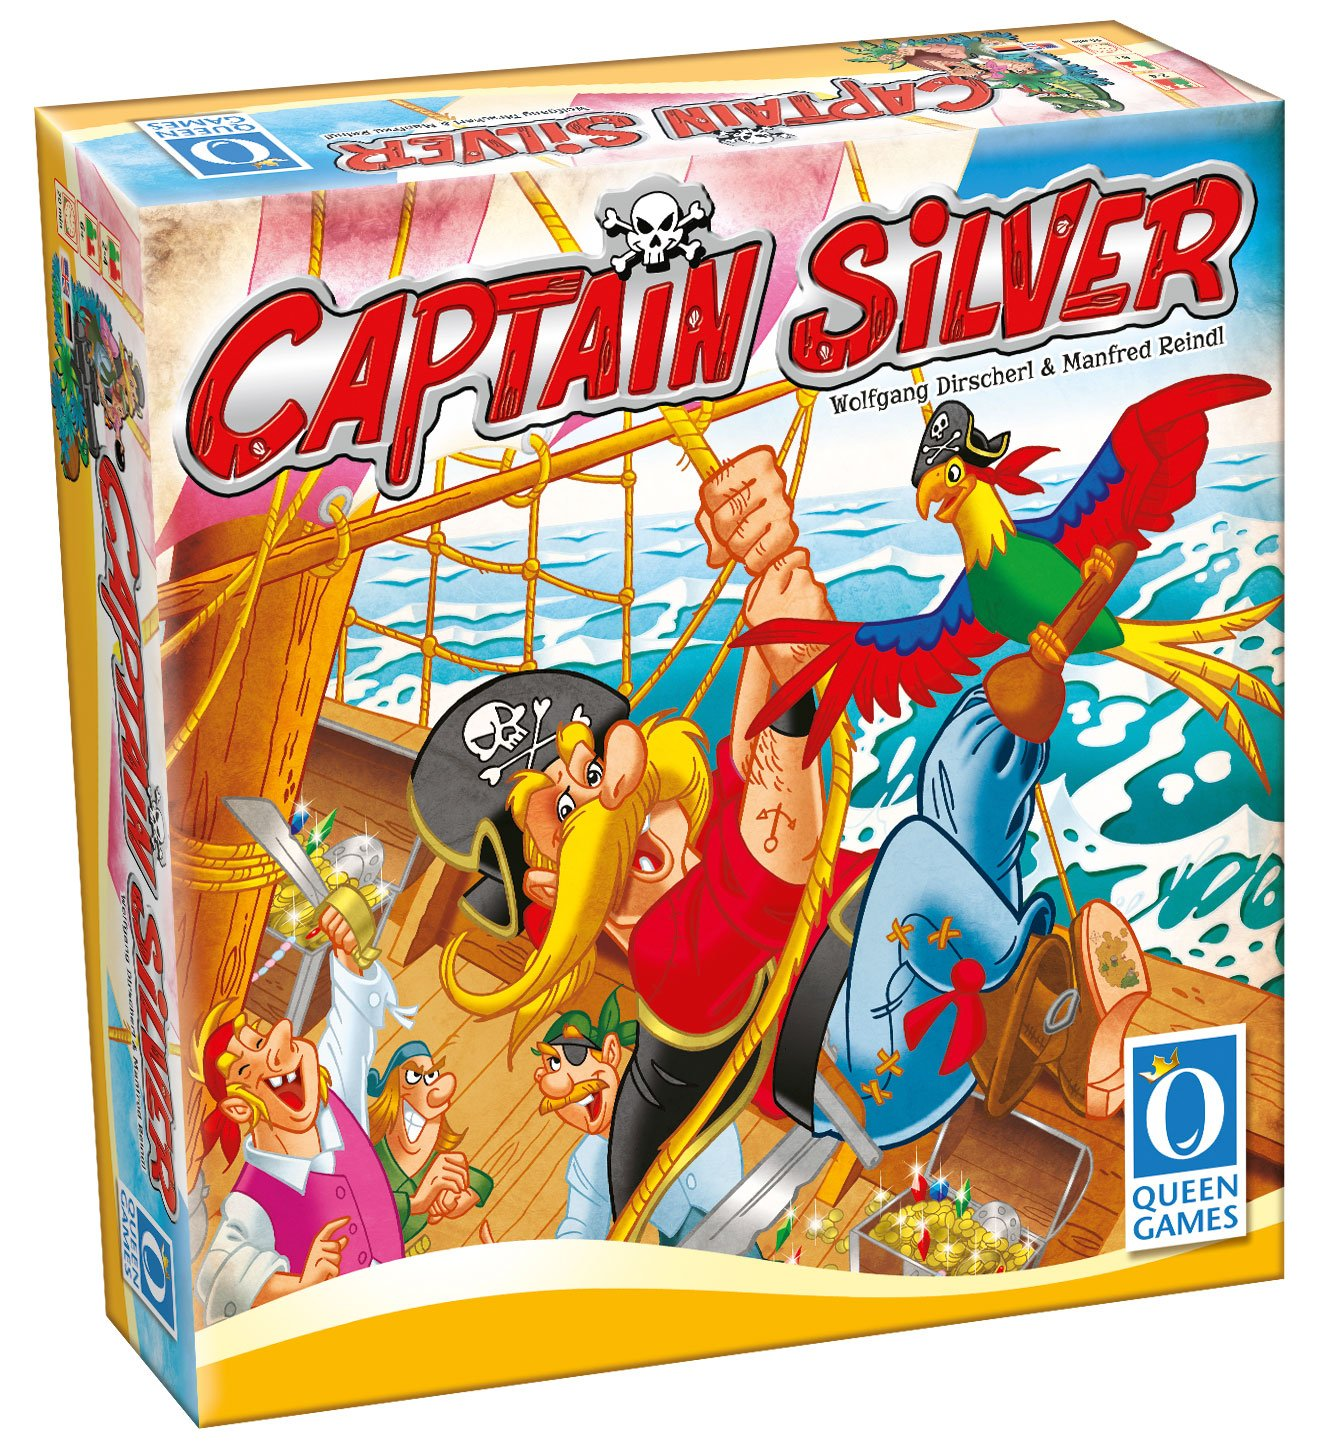 Capitain Silver